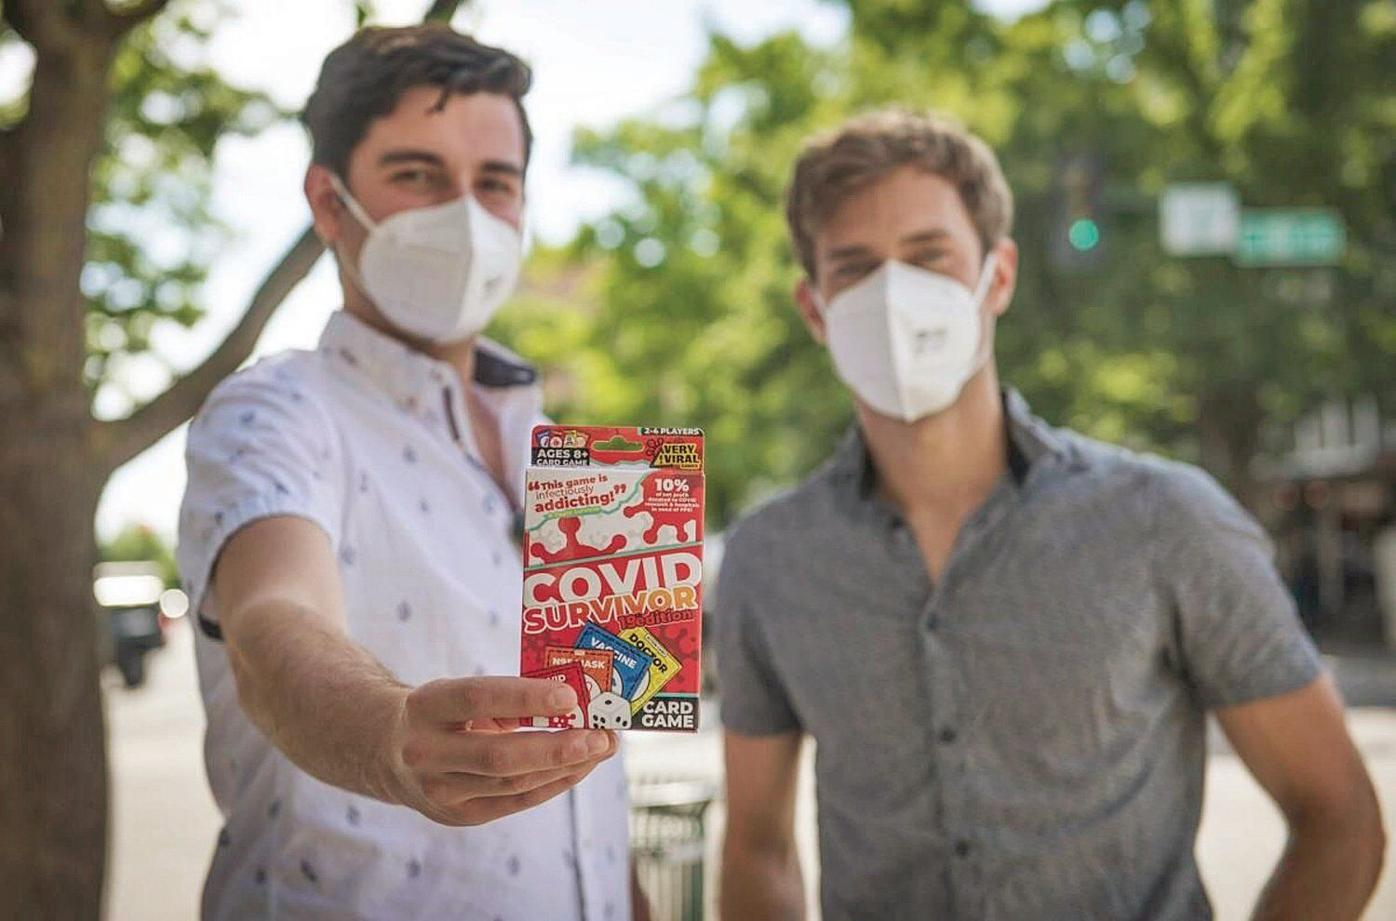 Vernon native's game deals a little fun to pandemic